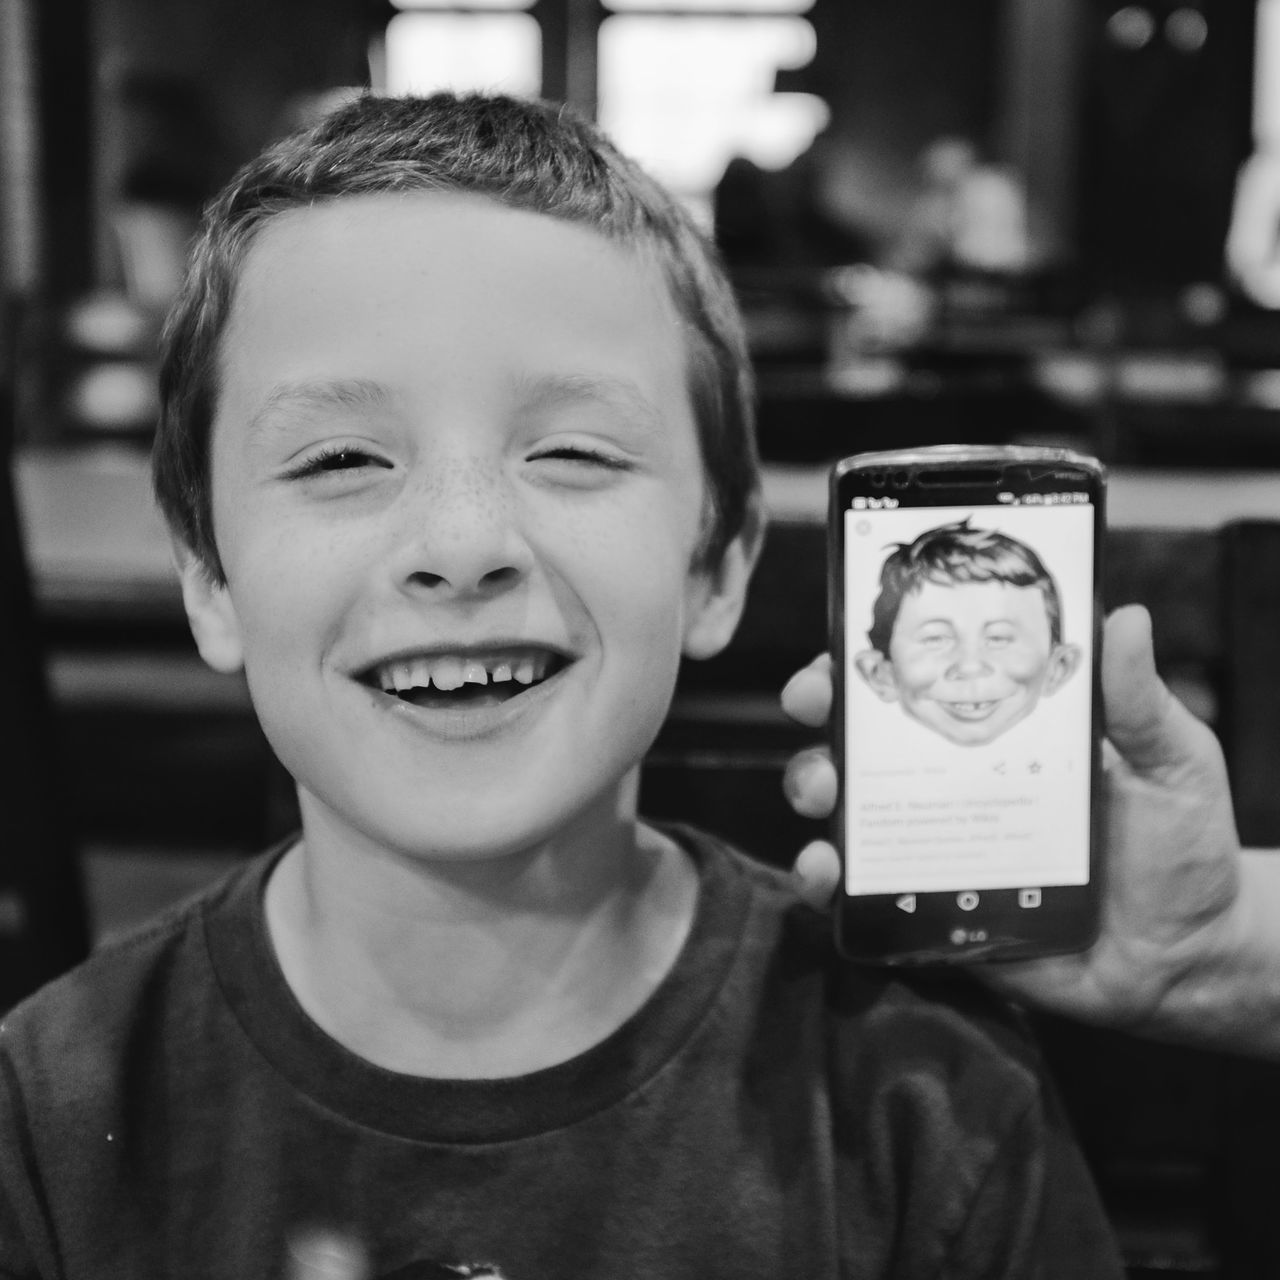 Visual journal May 2017 Beatrice. Nebraska https://www.theparisreview.org/blog/2016/03/03/a-boy-with-no-birthday-turns-sixty/ A Day In The Life Alfred E. Neuman Boys Camera Work Cheerful Childhood Close-up Everyday Lives Eye For Photography EyeEm Best Shots EyeEm Gallery Fujifilm EF-20 FUJIFILM X100S Lifestyles Looking At Camera Photo Diary Photographing Photography Themes Portrait Practicing Photography Real People Small Town Stories Storytelling Visual Journal What, Me Worry?